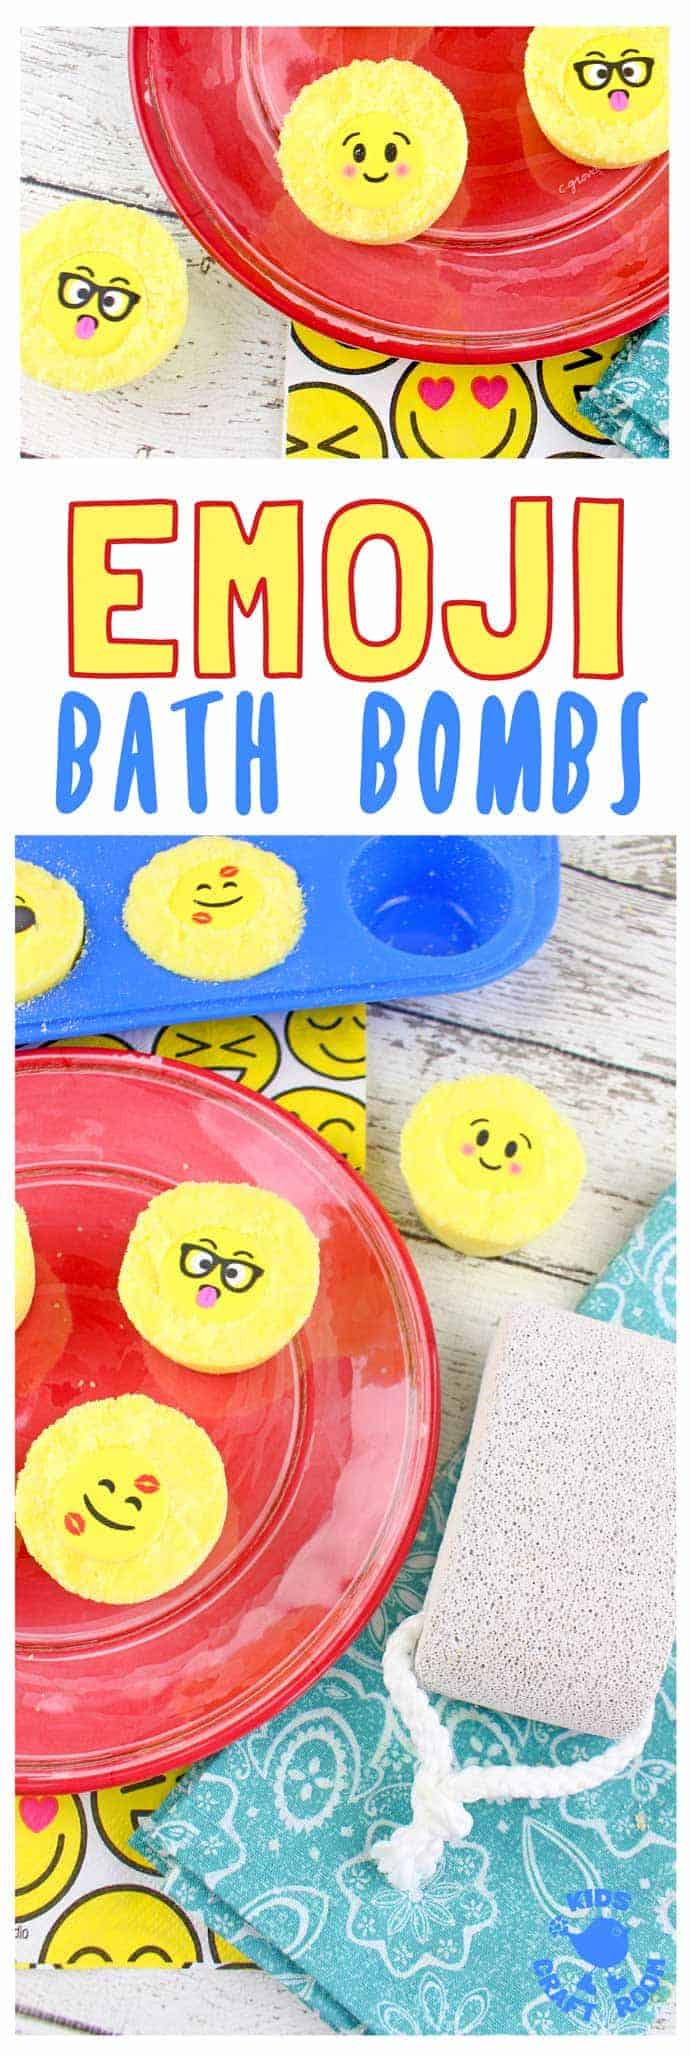 Emoji Bath Bombs by Kids Craft Room | Make Your Own Luxurious Bath Bombs with these 15 Awesome DIY Bath Bomb Recipes